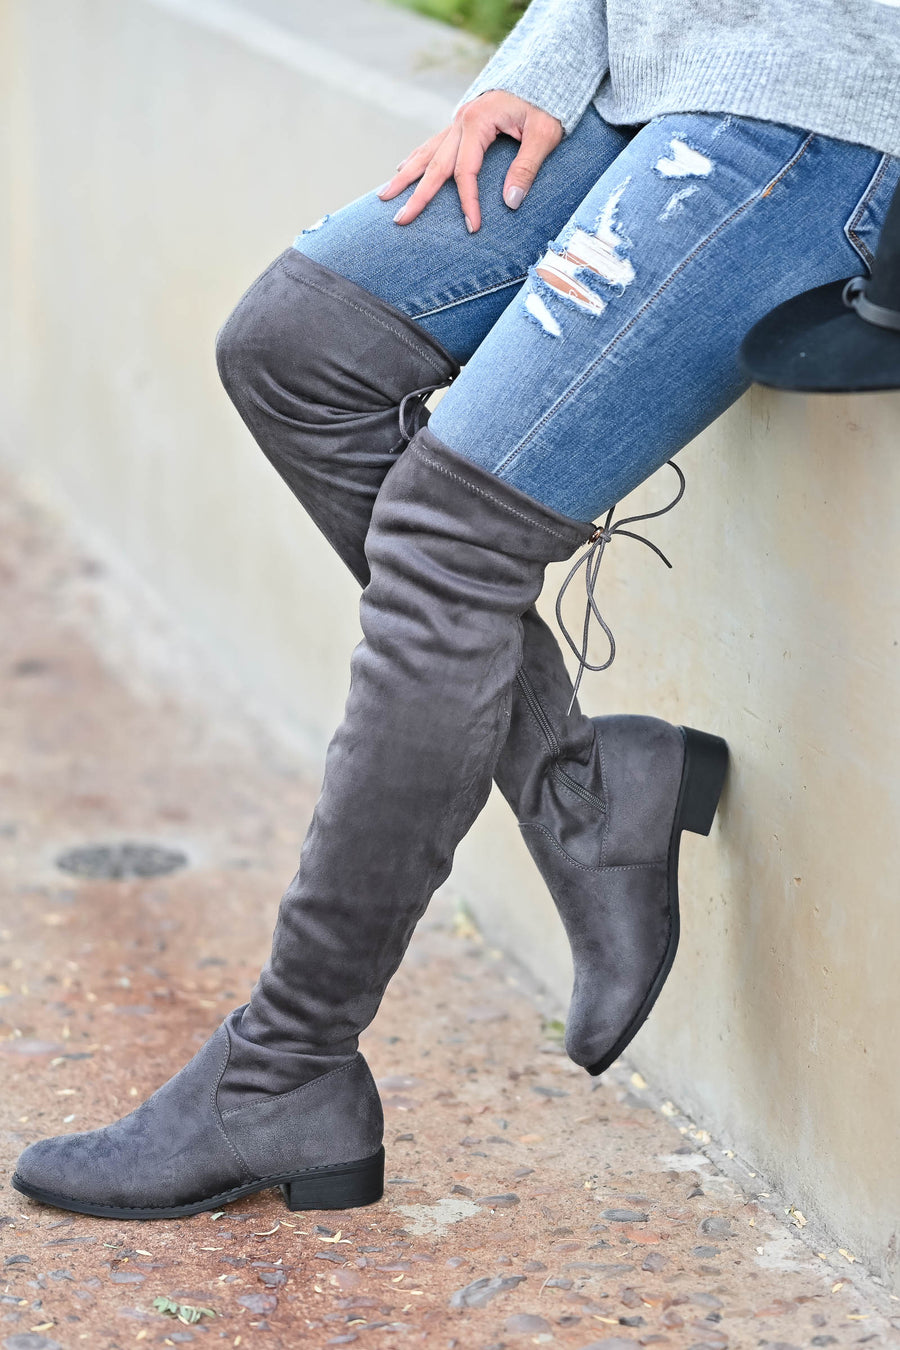 Gabby Over The Knee Boots - Grey Women's grey, vegan suede, over-the-knee boots featuring short heel, partial inside zipper, and adjustable drawstring at back closet candy front